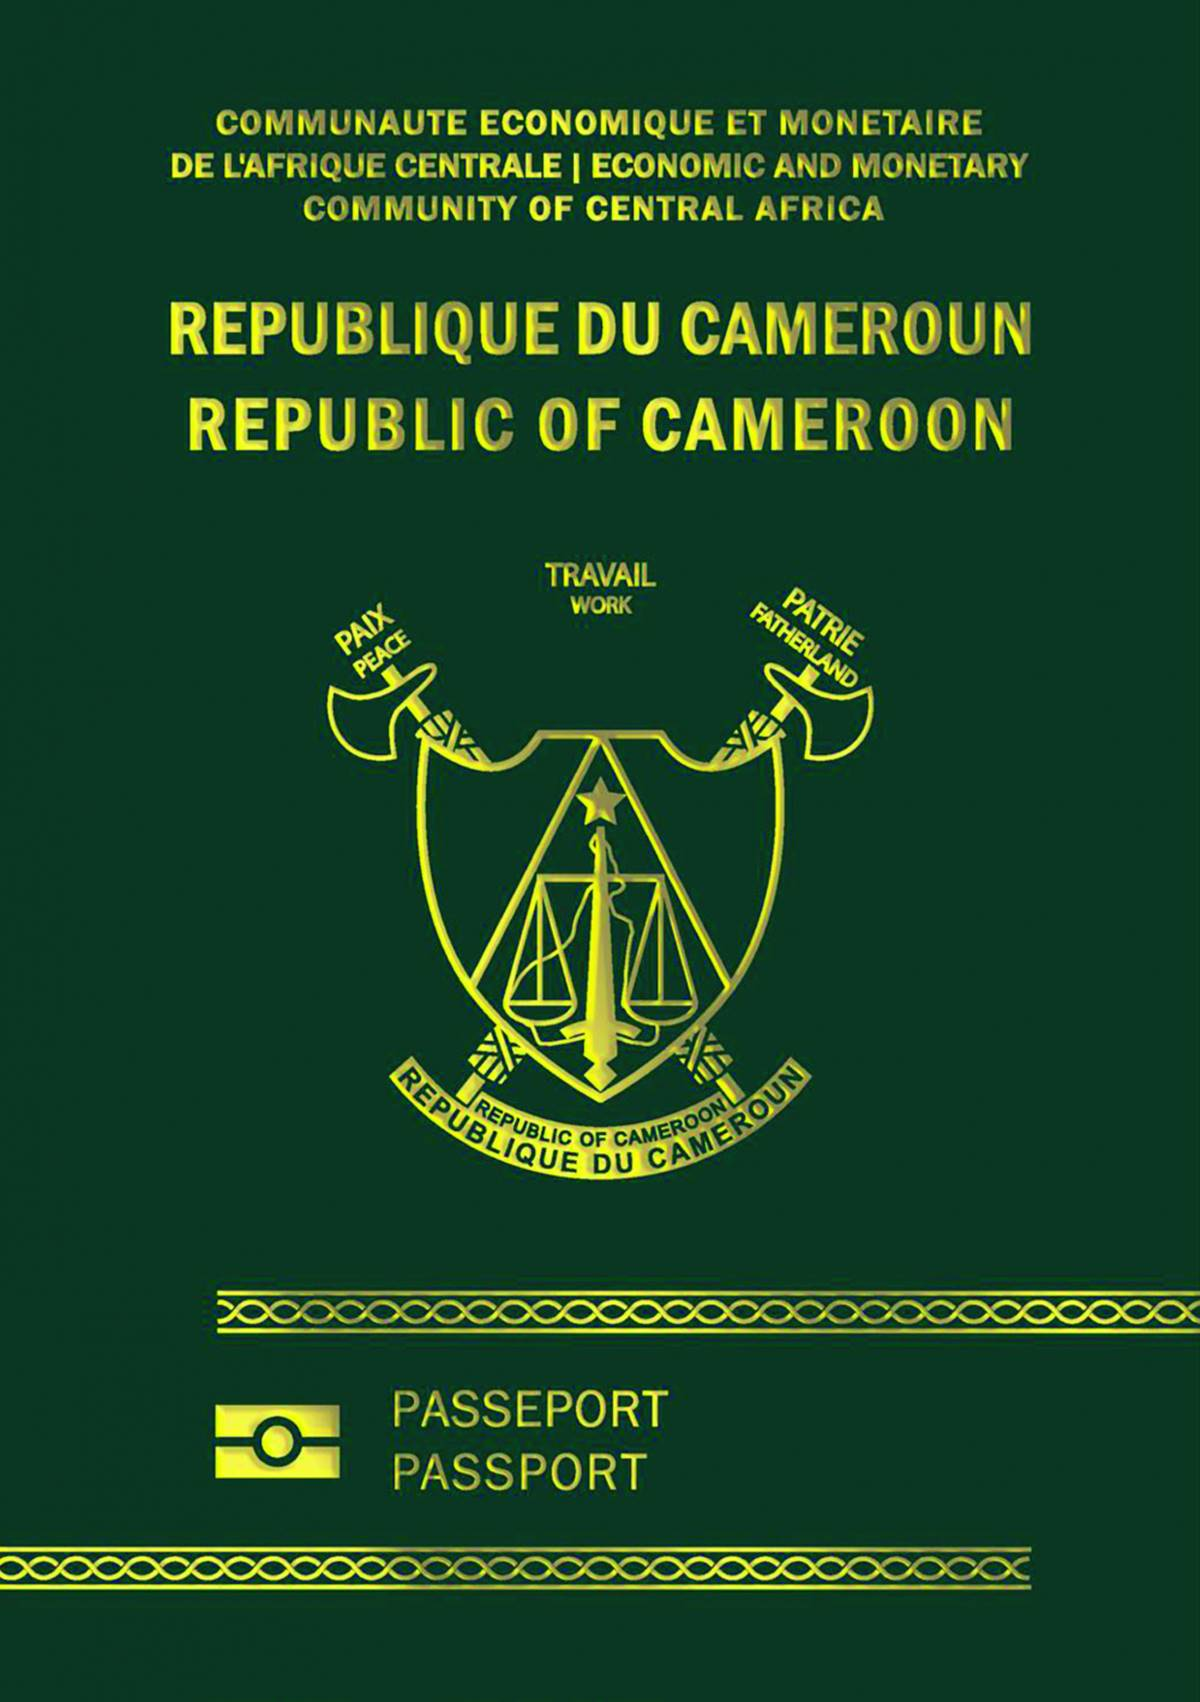 How long does it take to process a passport in Cameroon?